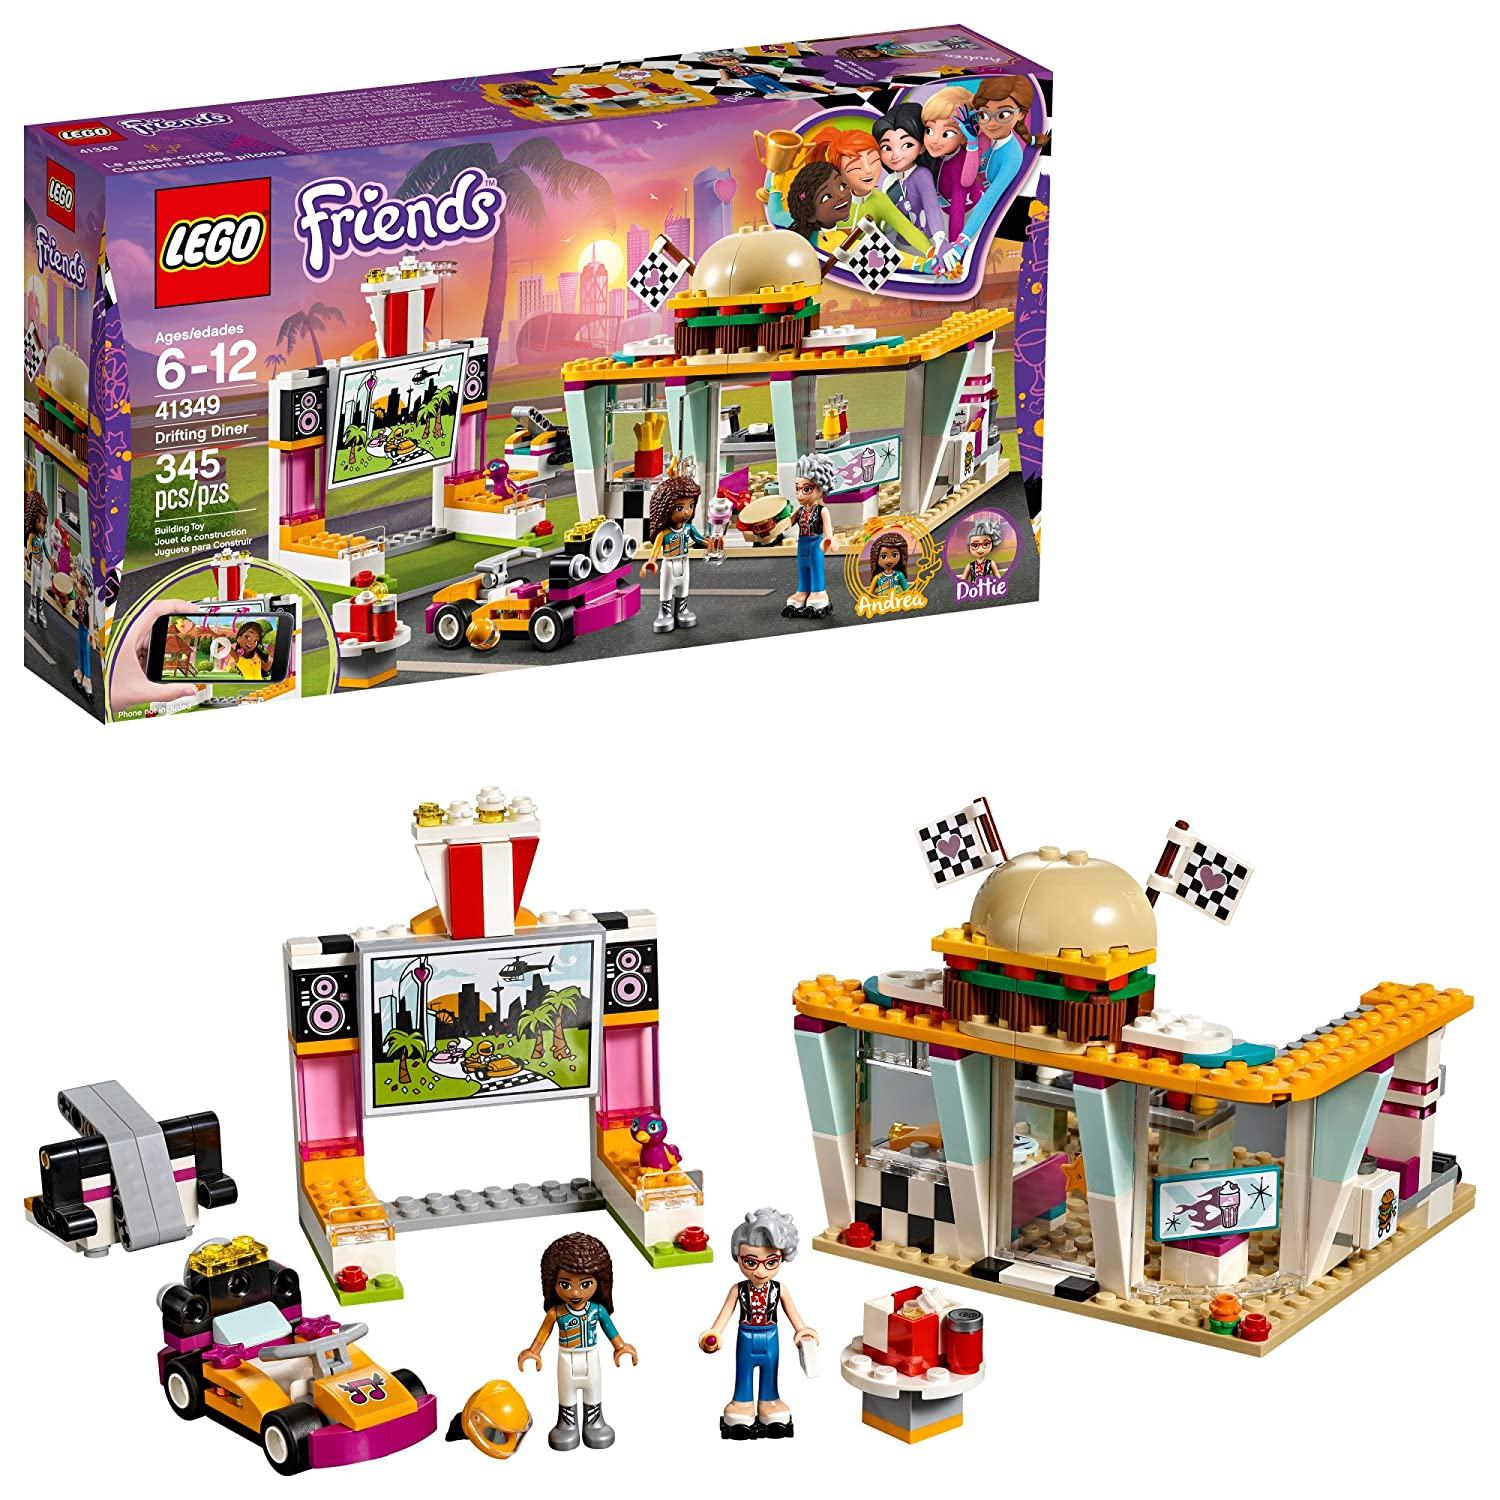 LEGO Friends Drifting Diner 41349 Race Car and Go-Kart Toy Building Kit for Kids, Best Creative Christmas Gift for Girls and Boys (345 Pieces) 6213504